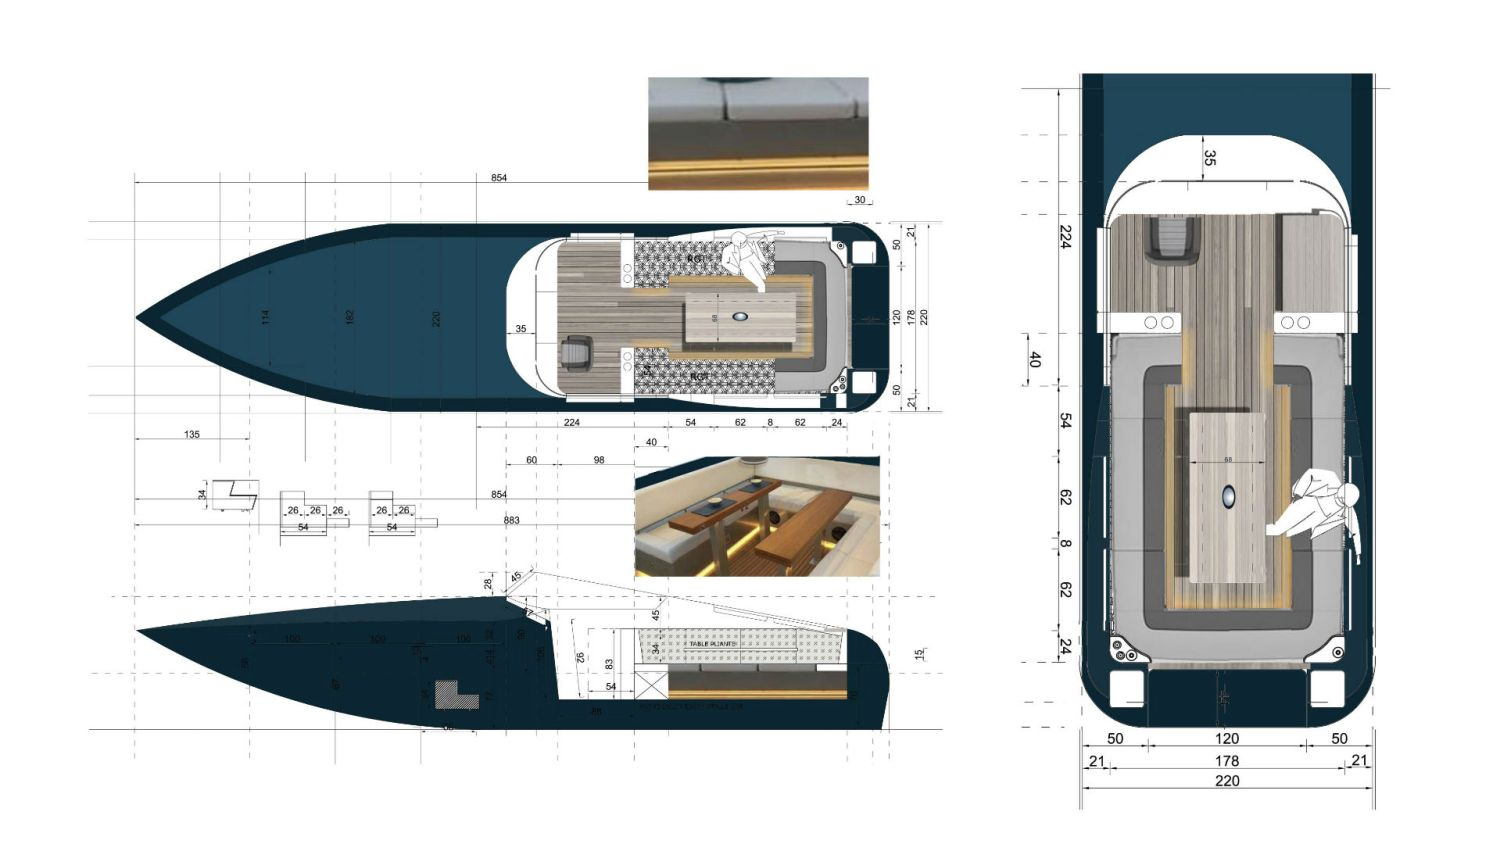 Renault electric boat